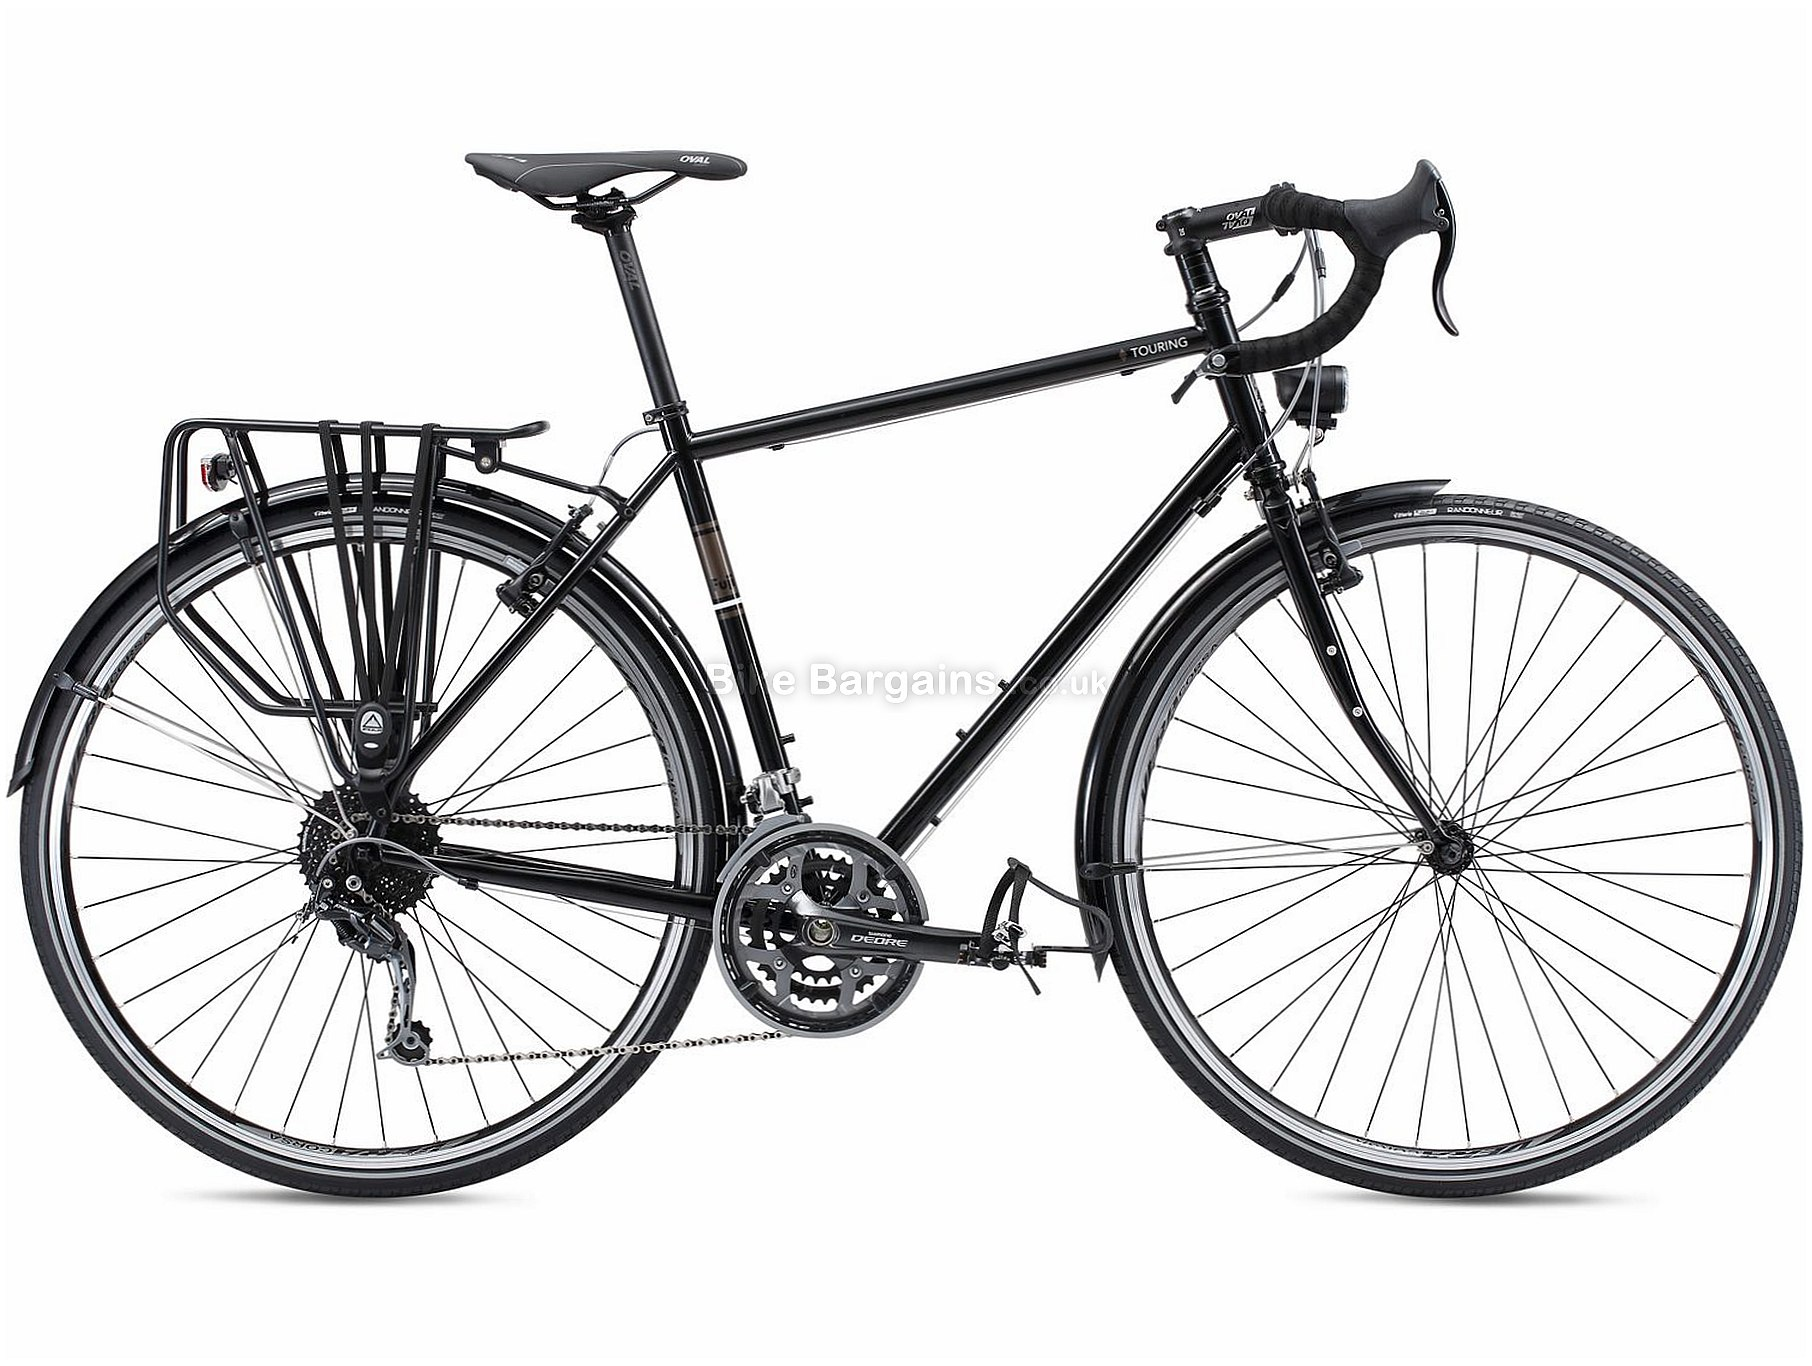 Fuji Touring Steel Road Bike 2018 was sold for £450! (49cm